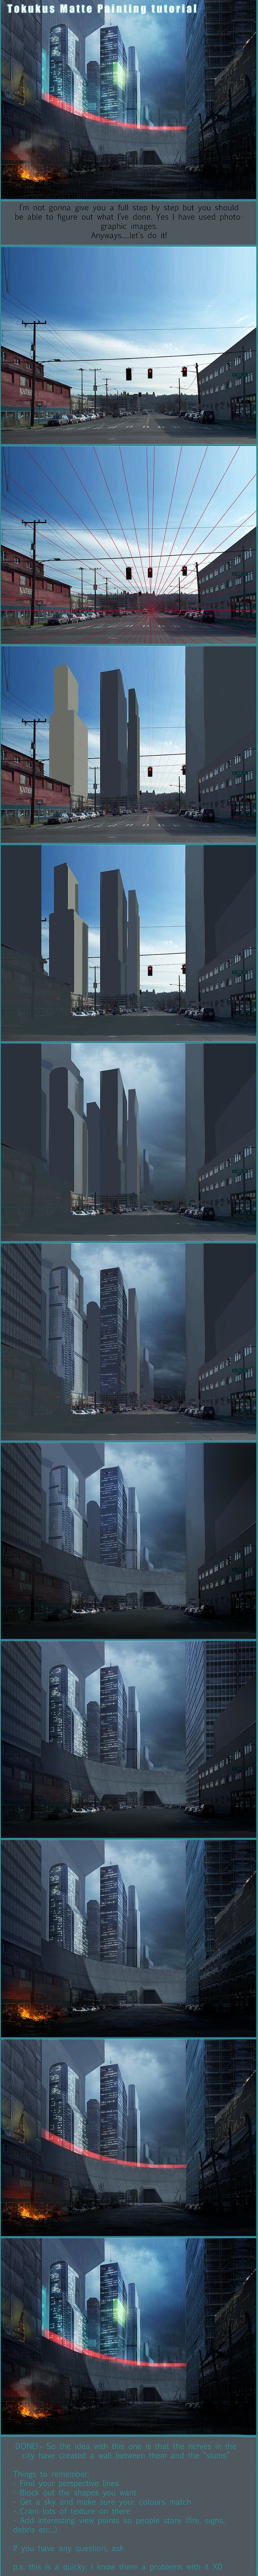 Matte Painting Tutorial by tokuku